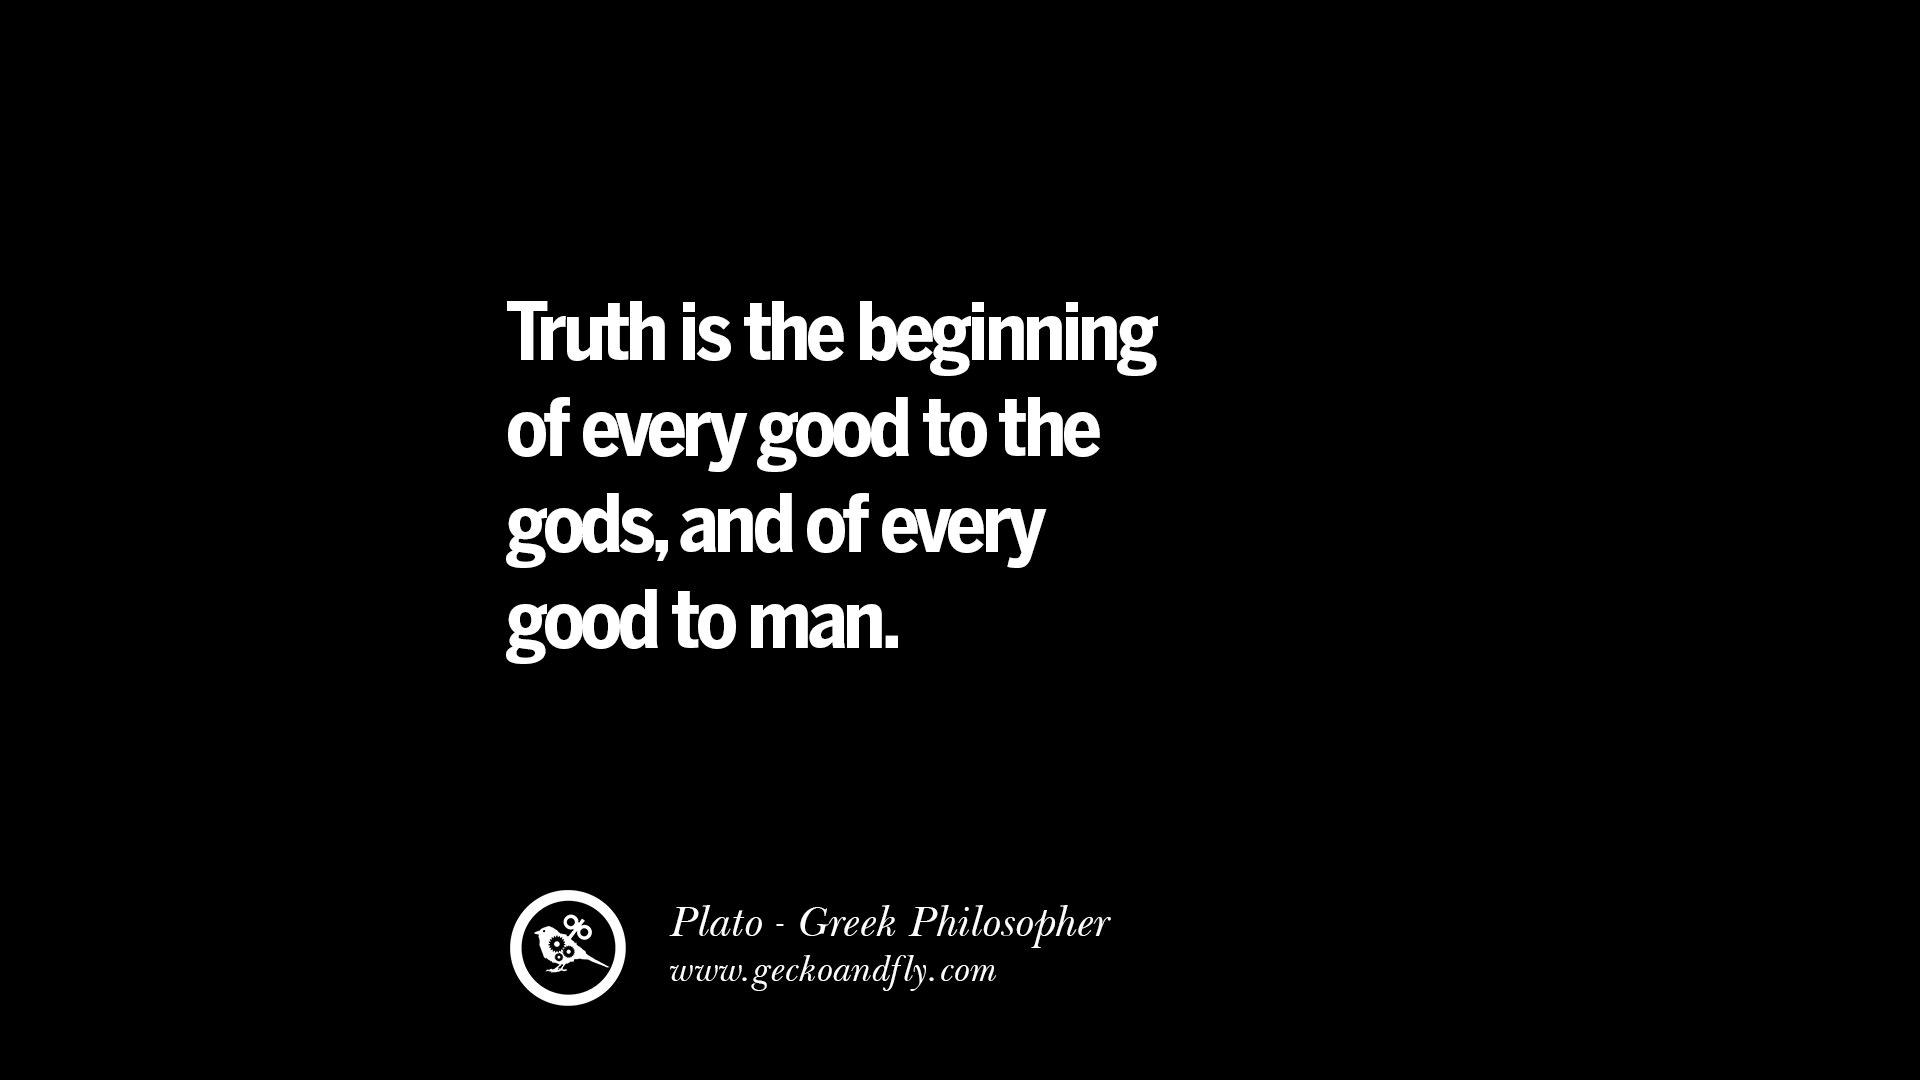 philosophy of truth Truth is one of the central subjects in philosophy it is also one of the largest  truth has been a topic of discussion in its own right for thousands.